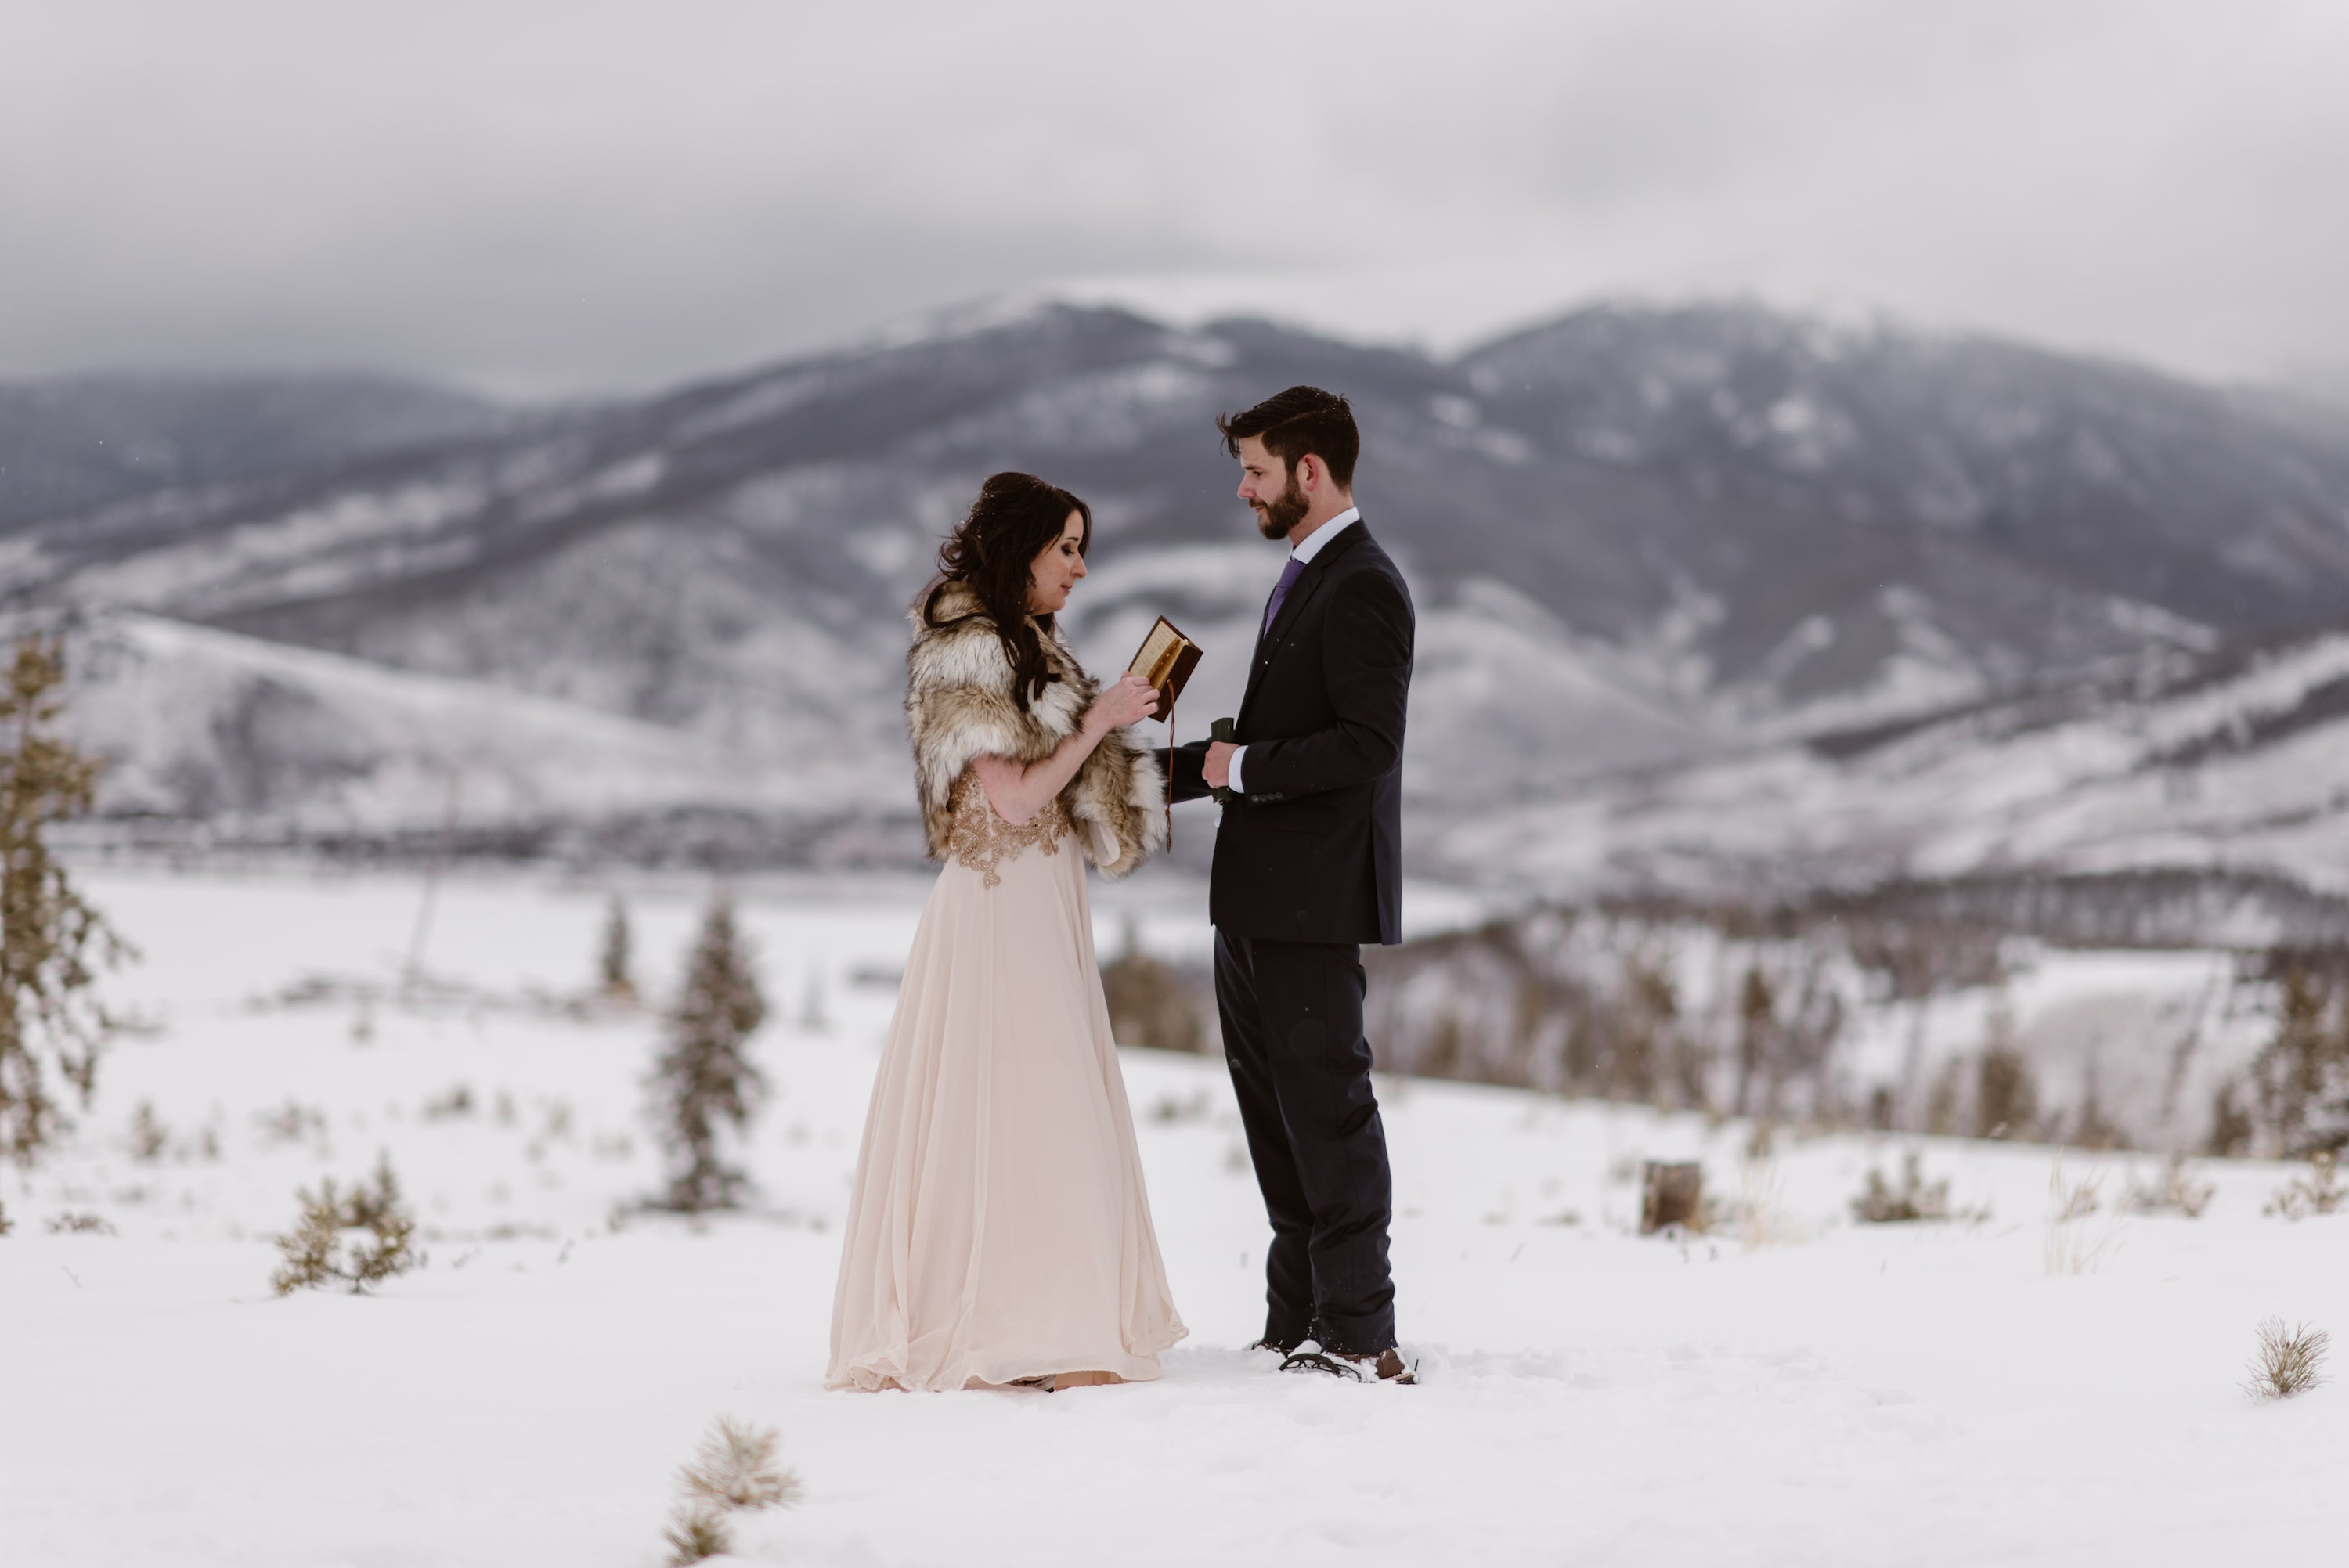 Wedding couple in outdoor winder wedding